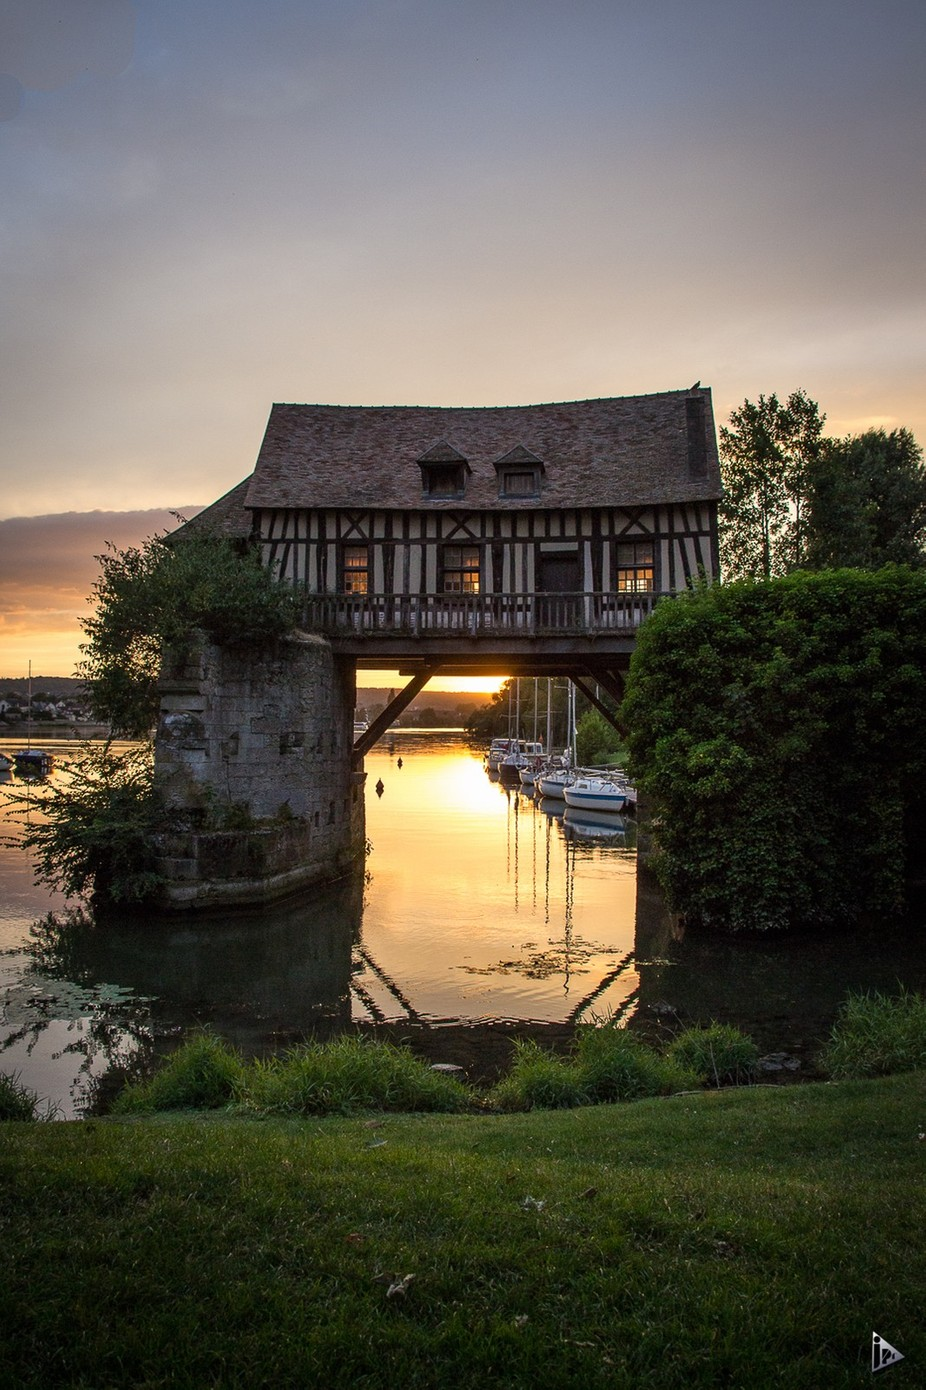 sunset behind the house over the river by amazed - Around the World Photo Contest By Discovery